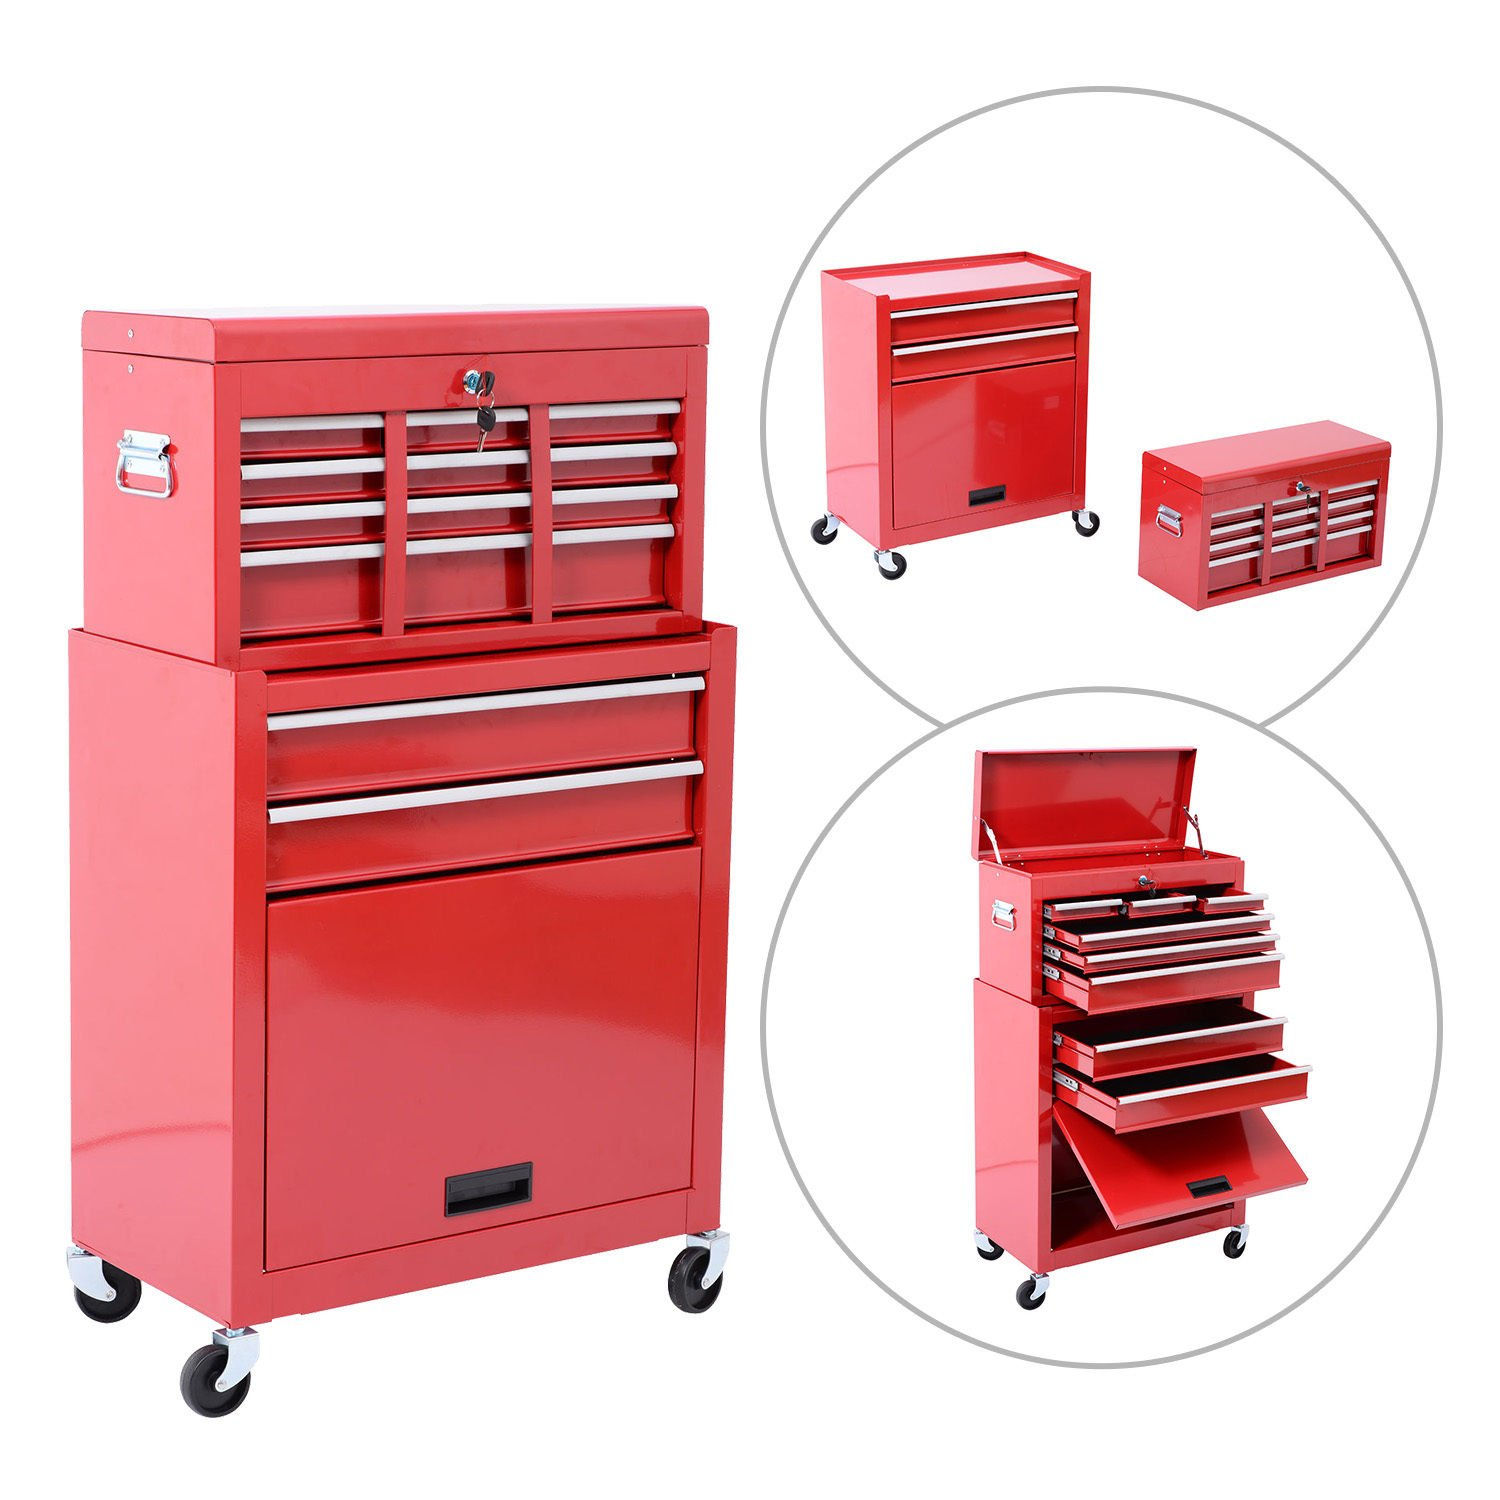 HomCom Rolling Tool Cabinet with 6 Drawer and Removable Tool Box - Red by HOMCOM